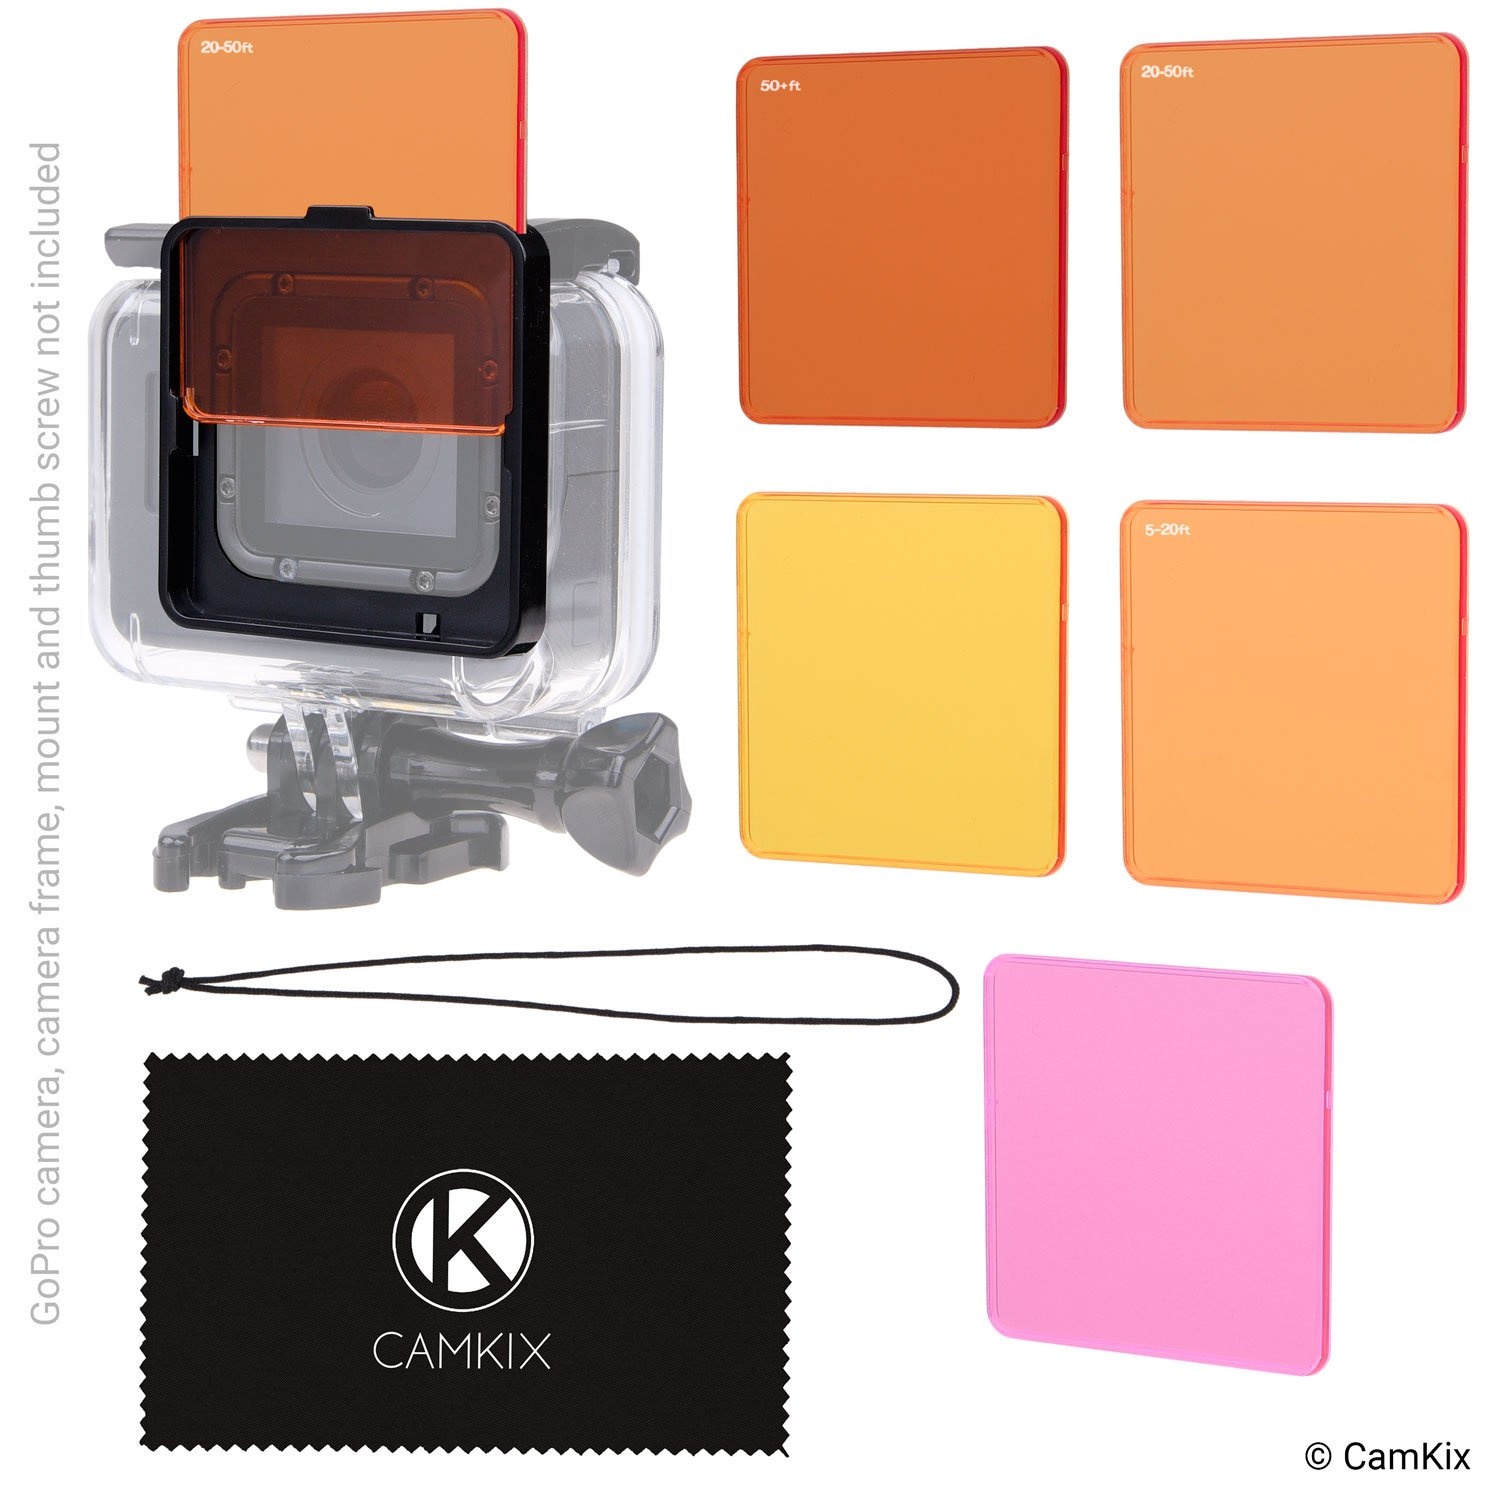 Diving Filter Kit for GoPro Hero 6 / 5 Black - 5 Filters (3x Red, 1x Magenta, 1x Yellow) - For use with waterproof housing (Super Suit) by CamKix